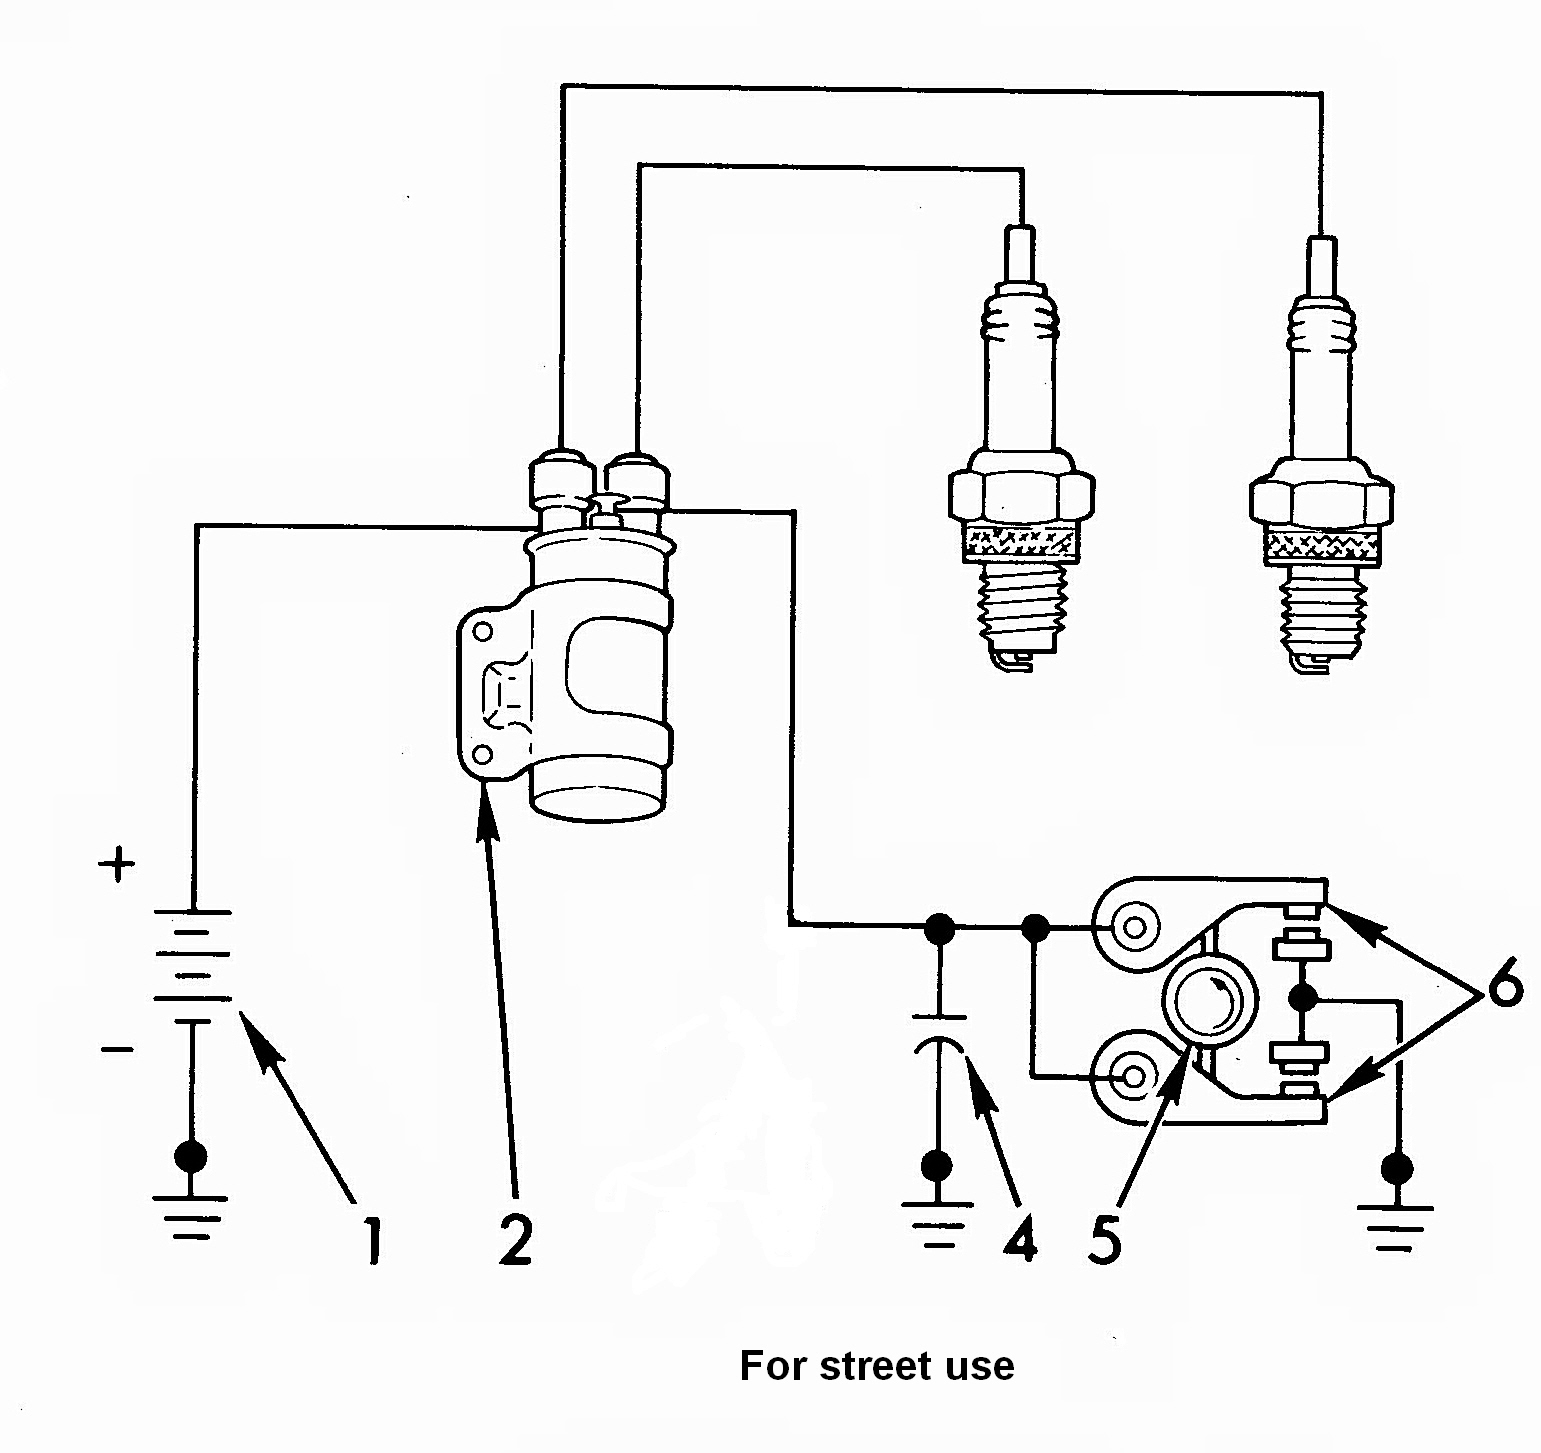 Mgb Wiring Diagram Wiring Wiring Diagram Images